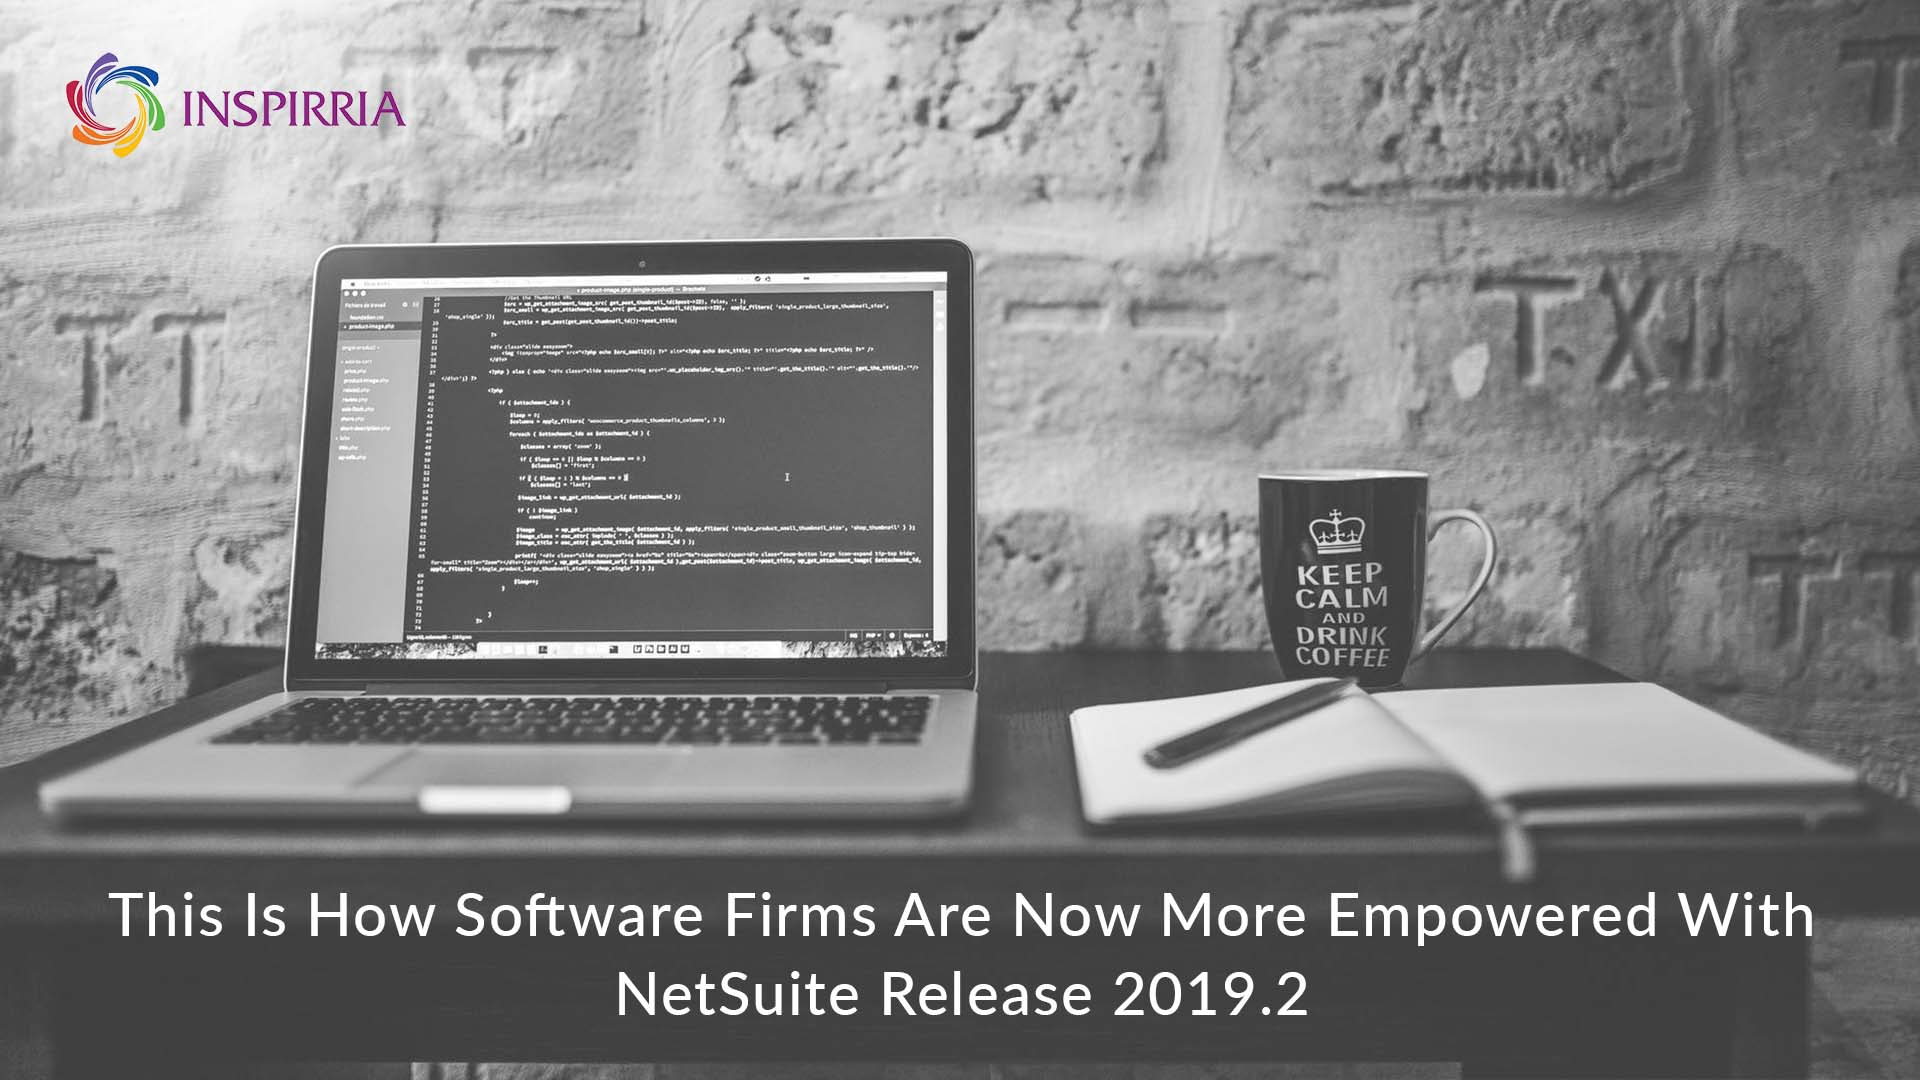 NetSuite Update 2019.2 for Software companies